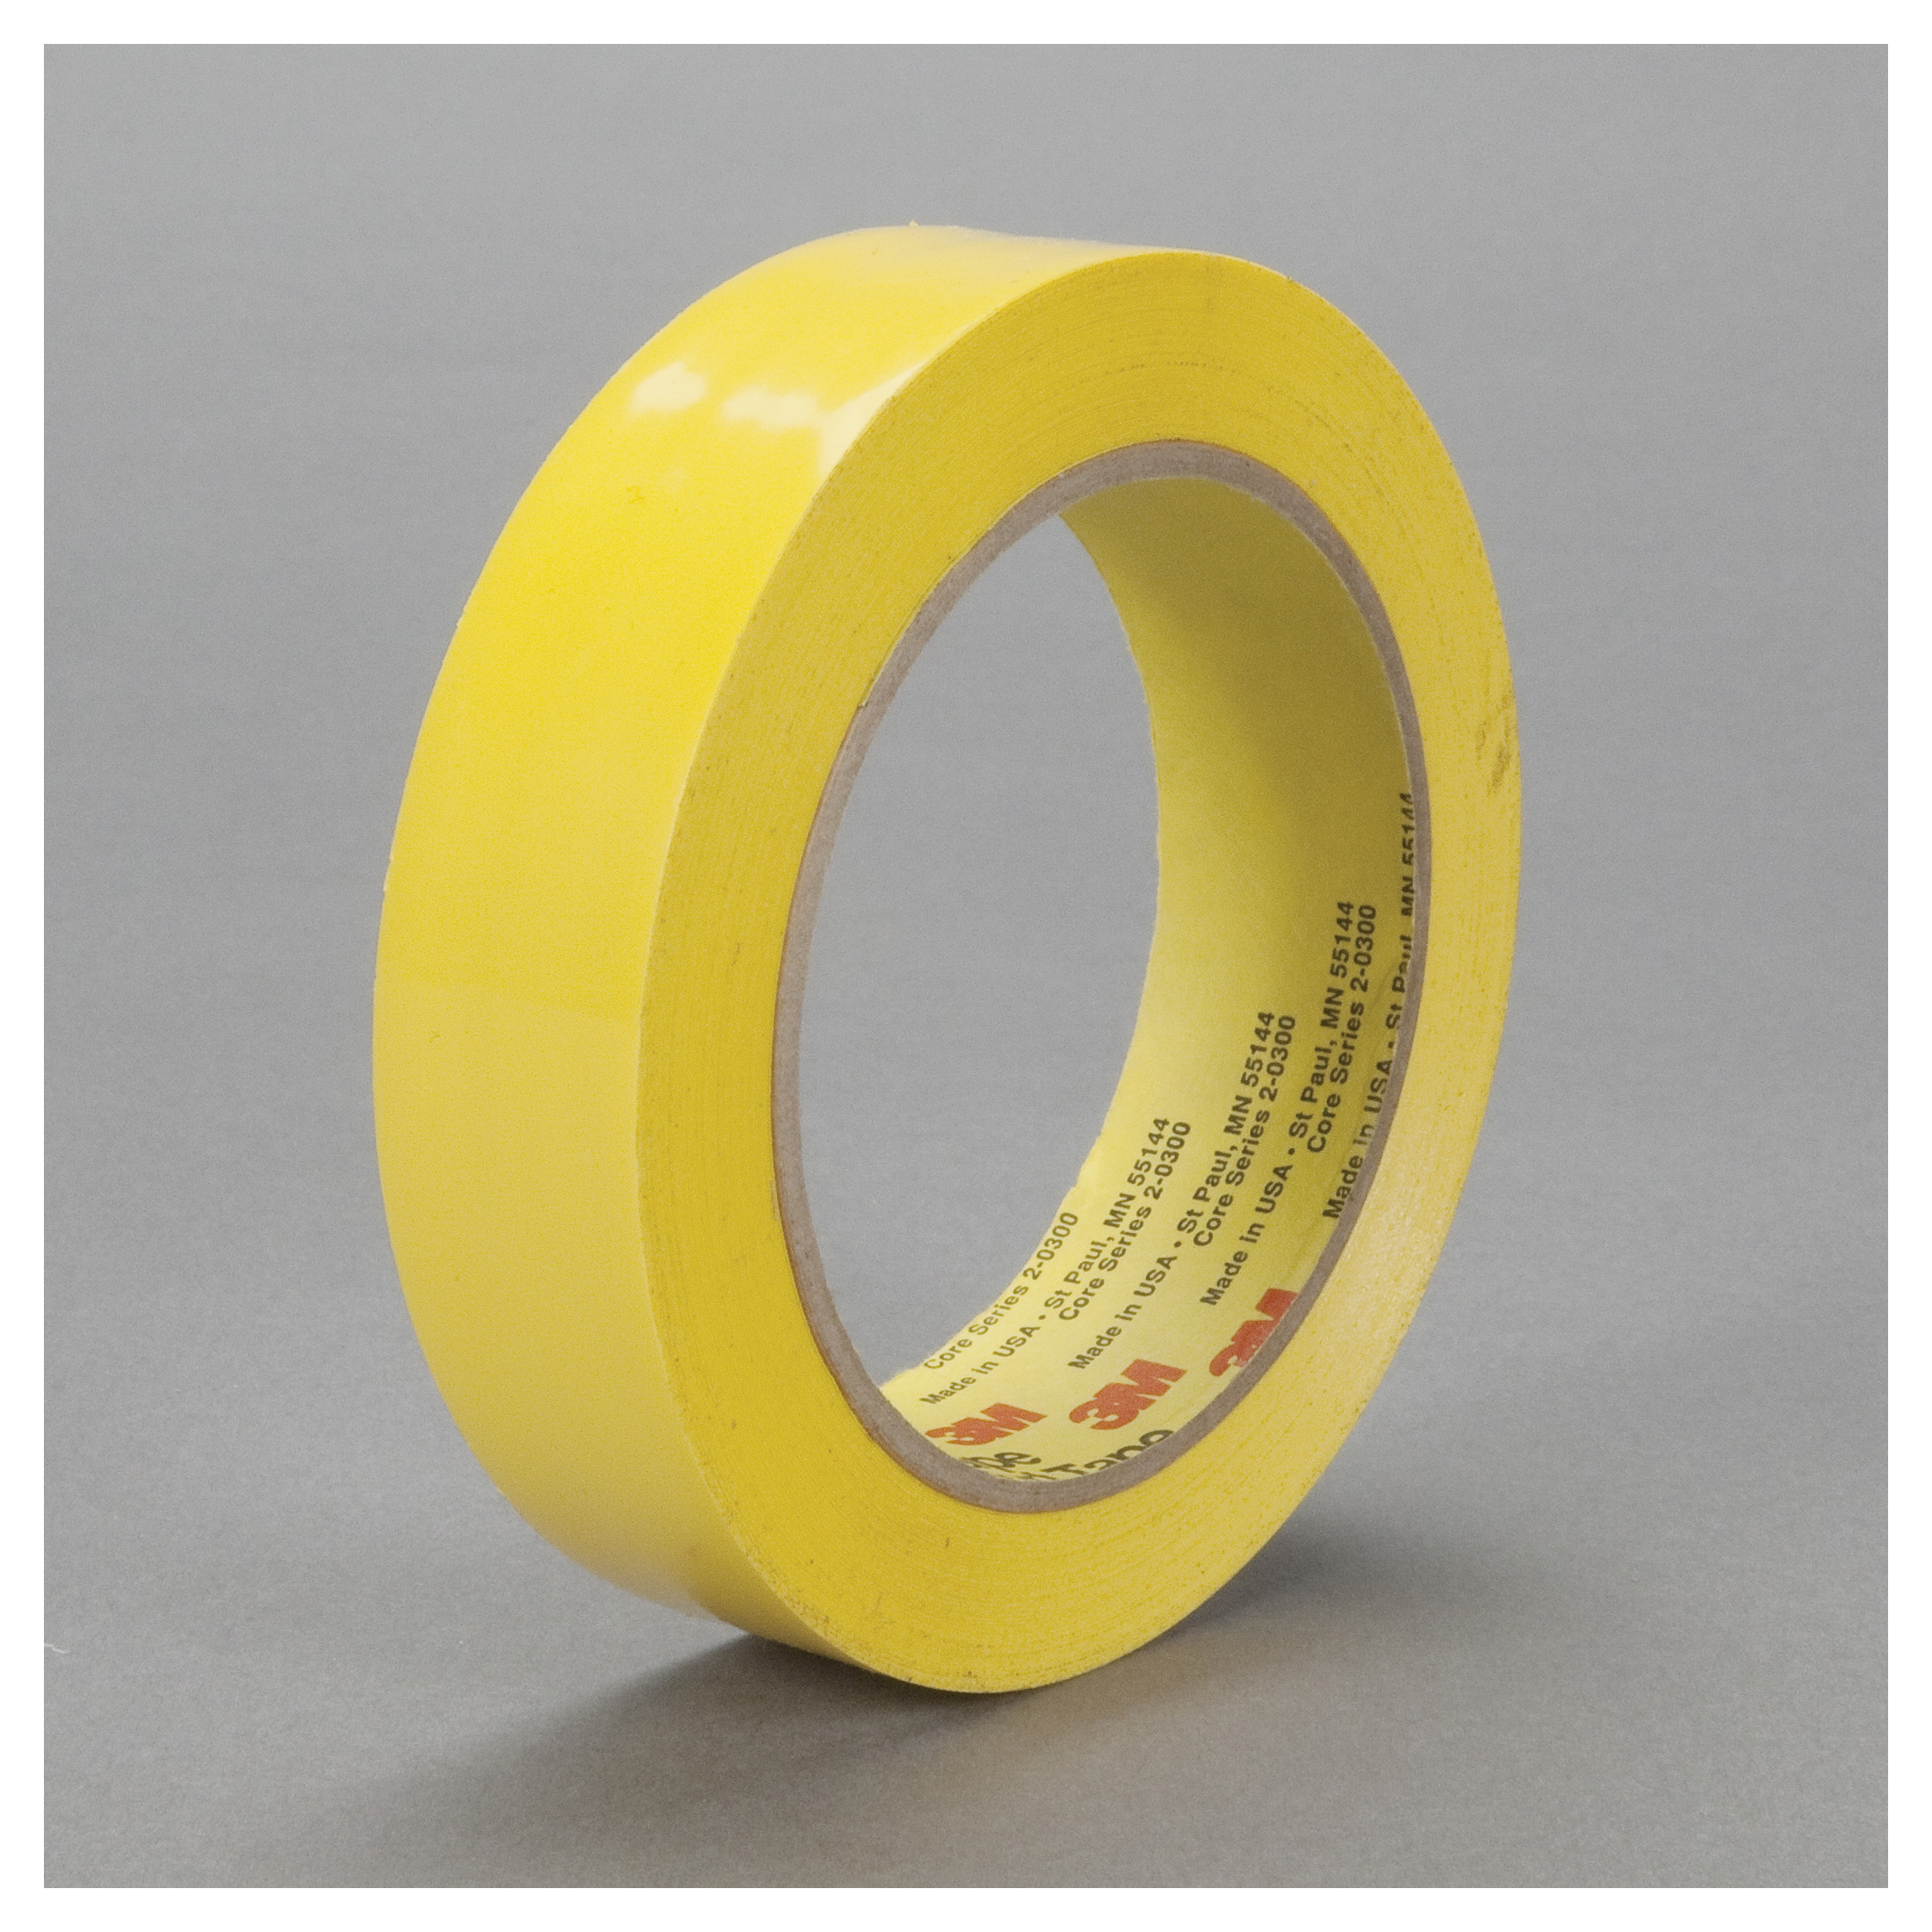 3M™ 021200-04011 Chemical-Resistant General Purpose UV-Resistant Masking Tape, 36 yd L x 1 in W, 5 mil THK, Rubber Adhesive, Polyethylene Backing